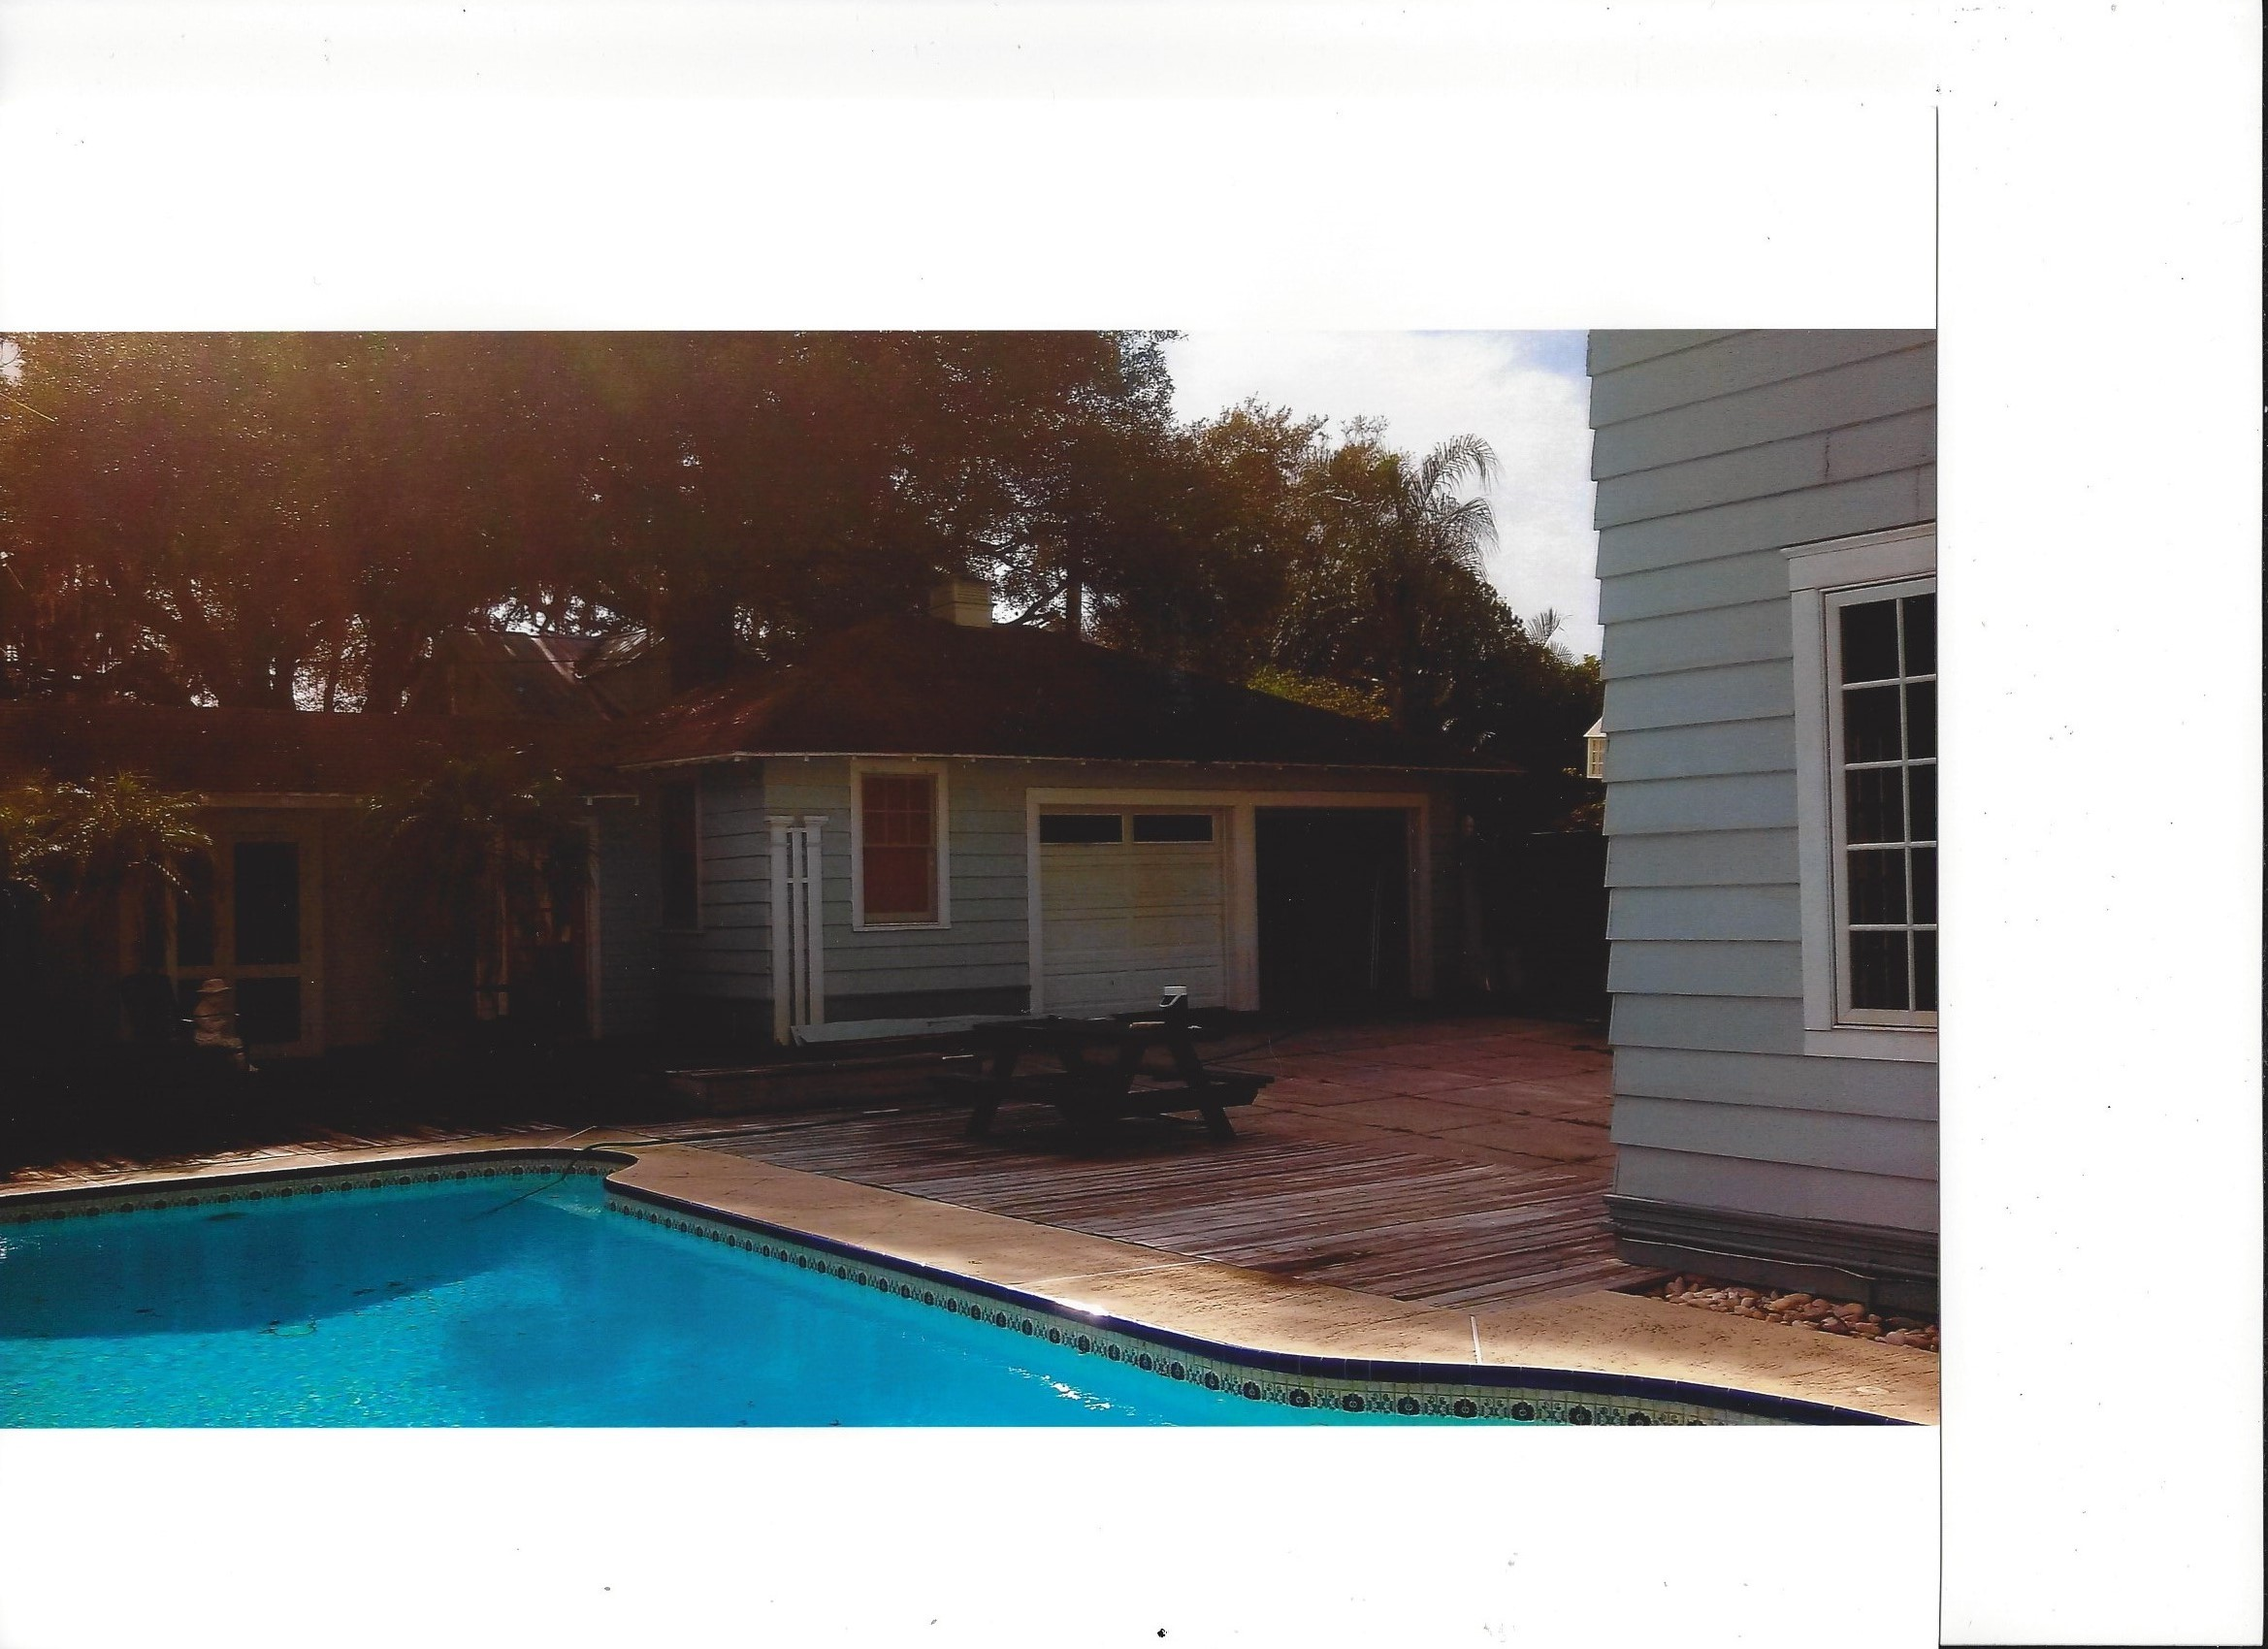 Clearwater pool house before